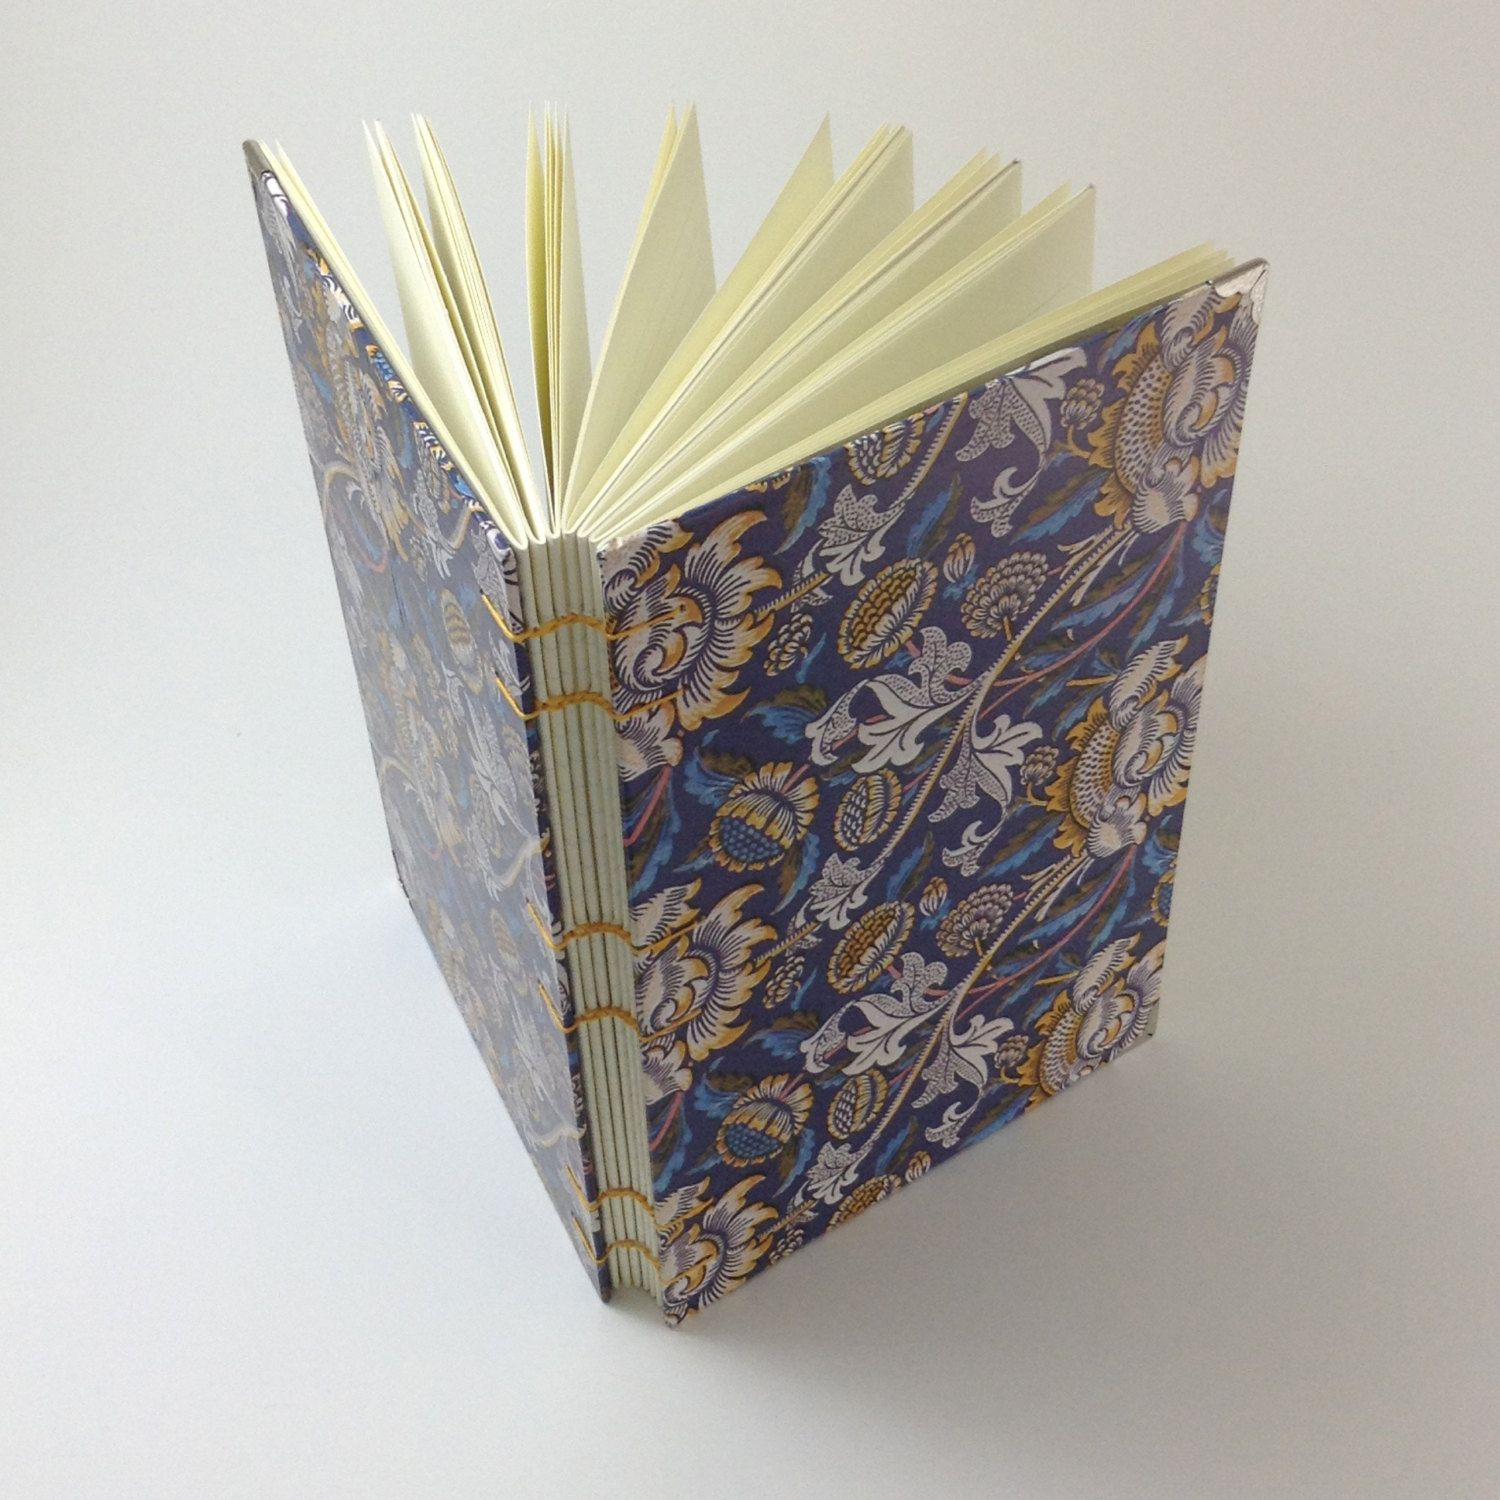 Medium Coptic-Stitched Notebook (Lined Paper) by sextonscottagebooks on Etsy